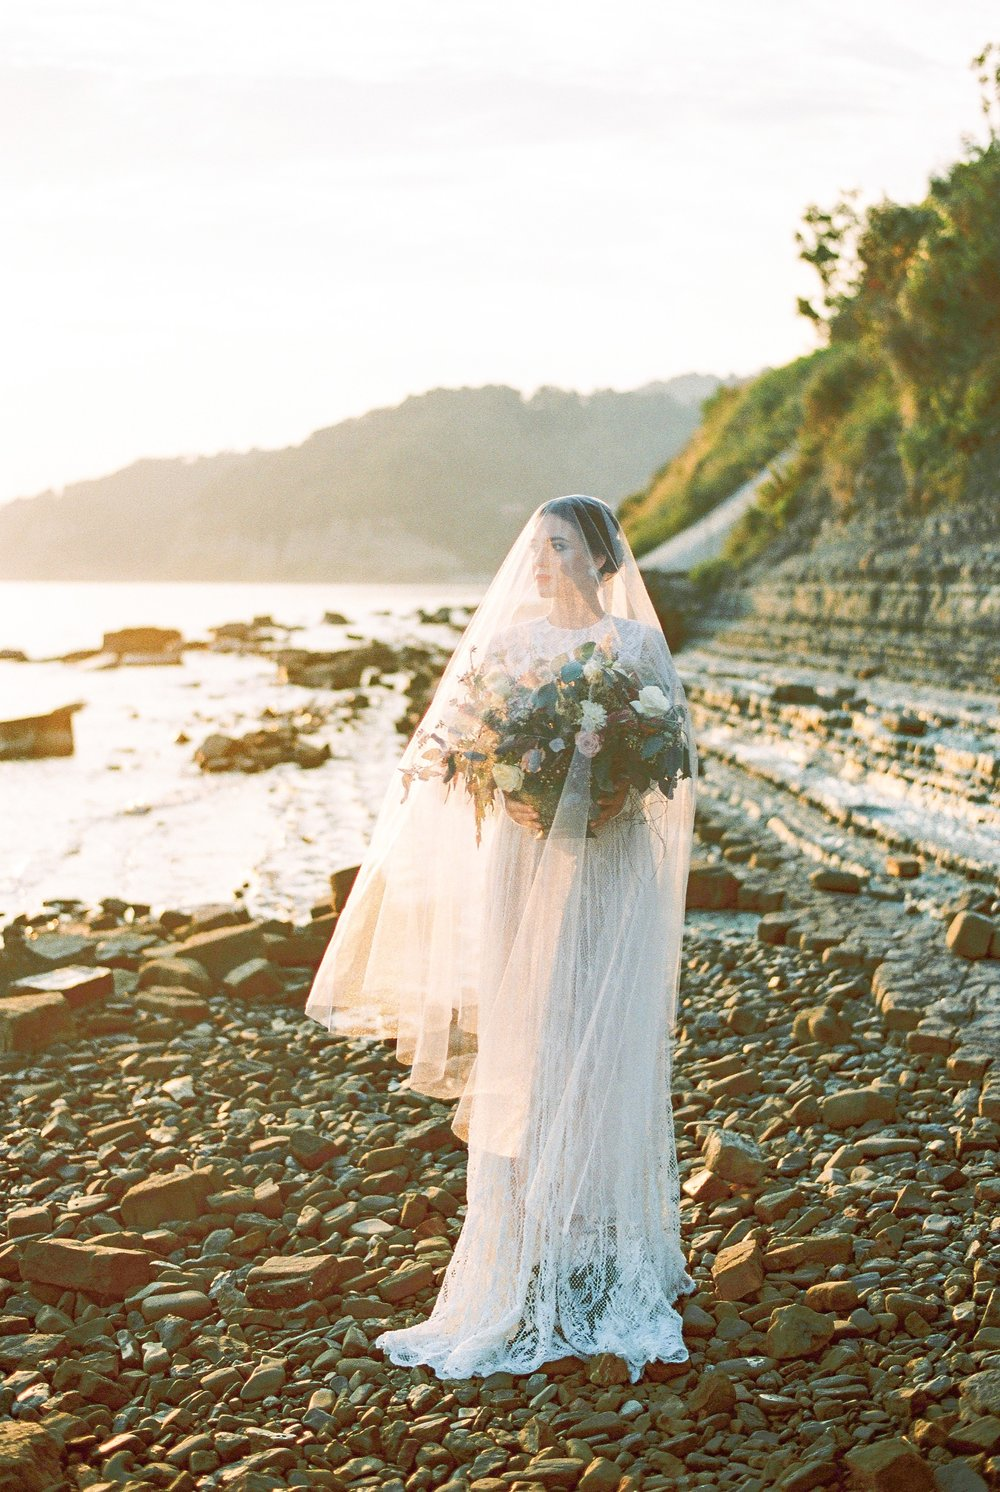 BytheSeastyledshoot_Belovedweddings48.jpg